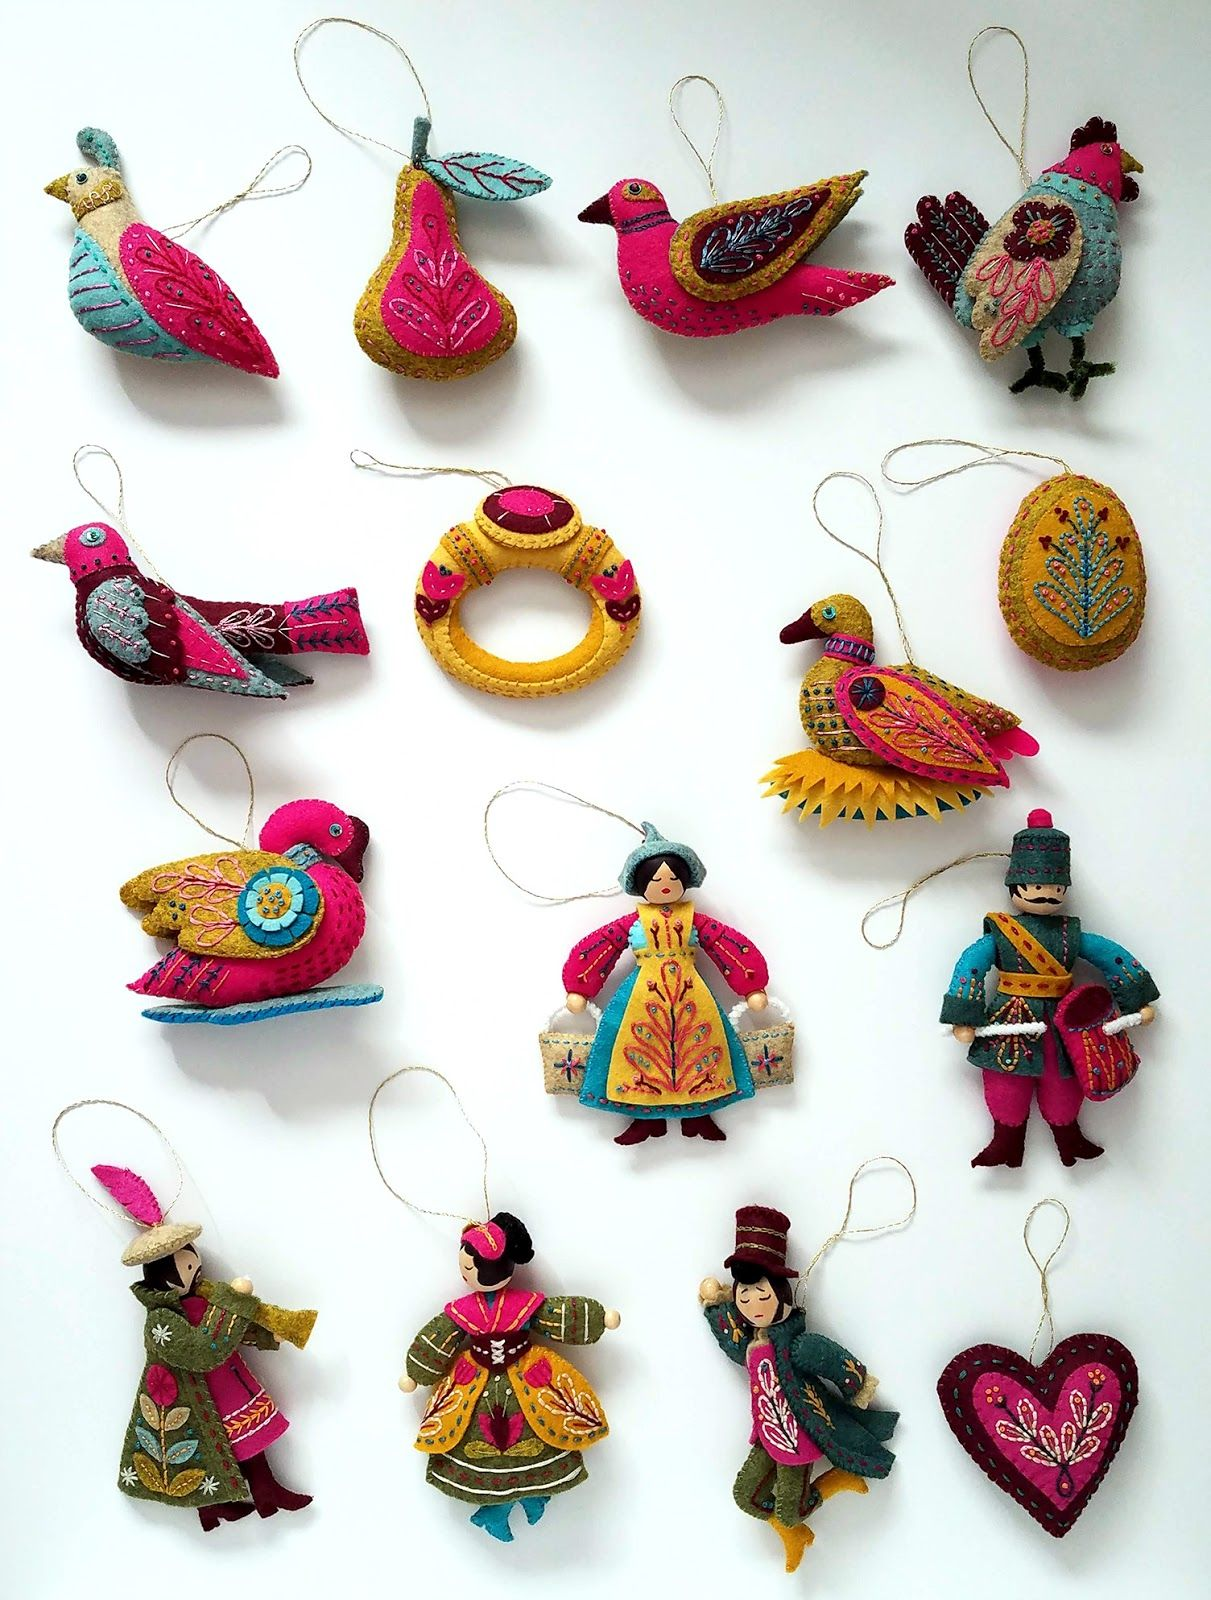 Finished 12 Days Of Christmas Ornaments Pattern By Mmmcrafts As Stitched By Flor Felt Christmas Ornaments Felt Ornaments Patterns Christmas Ornament Pattern